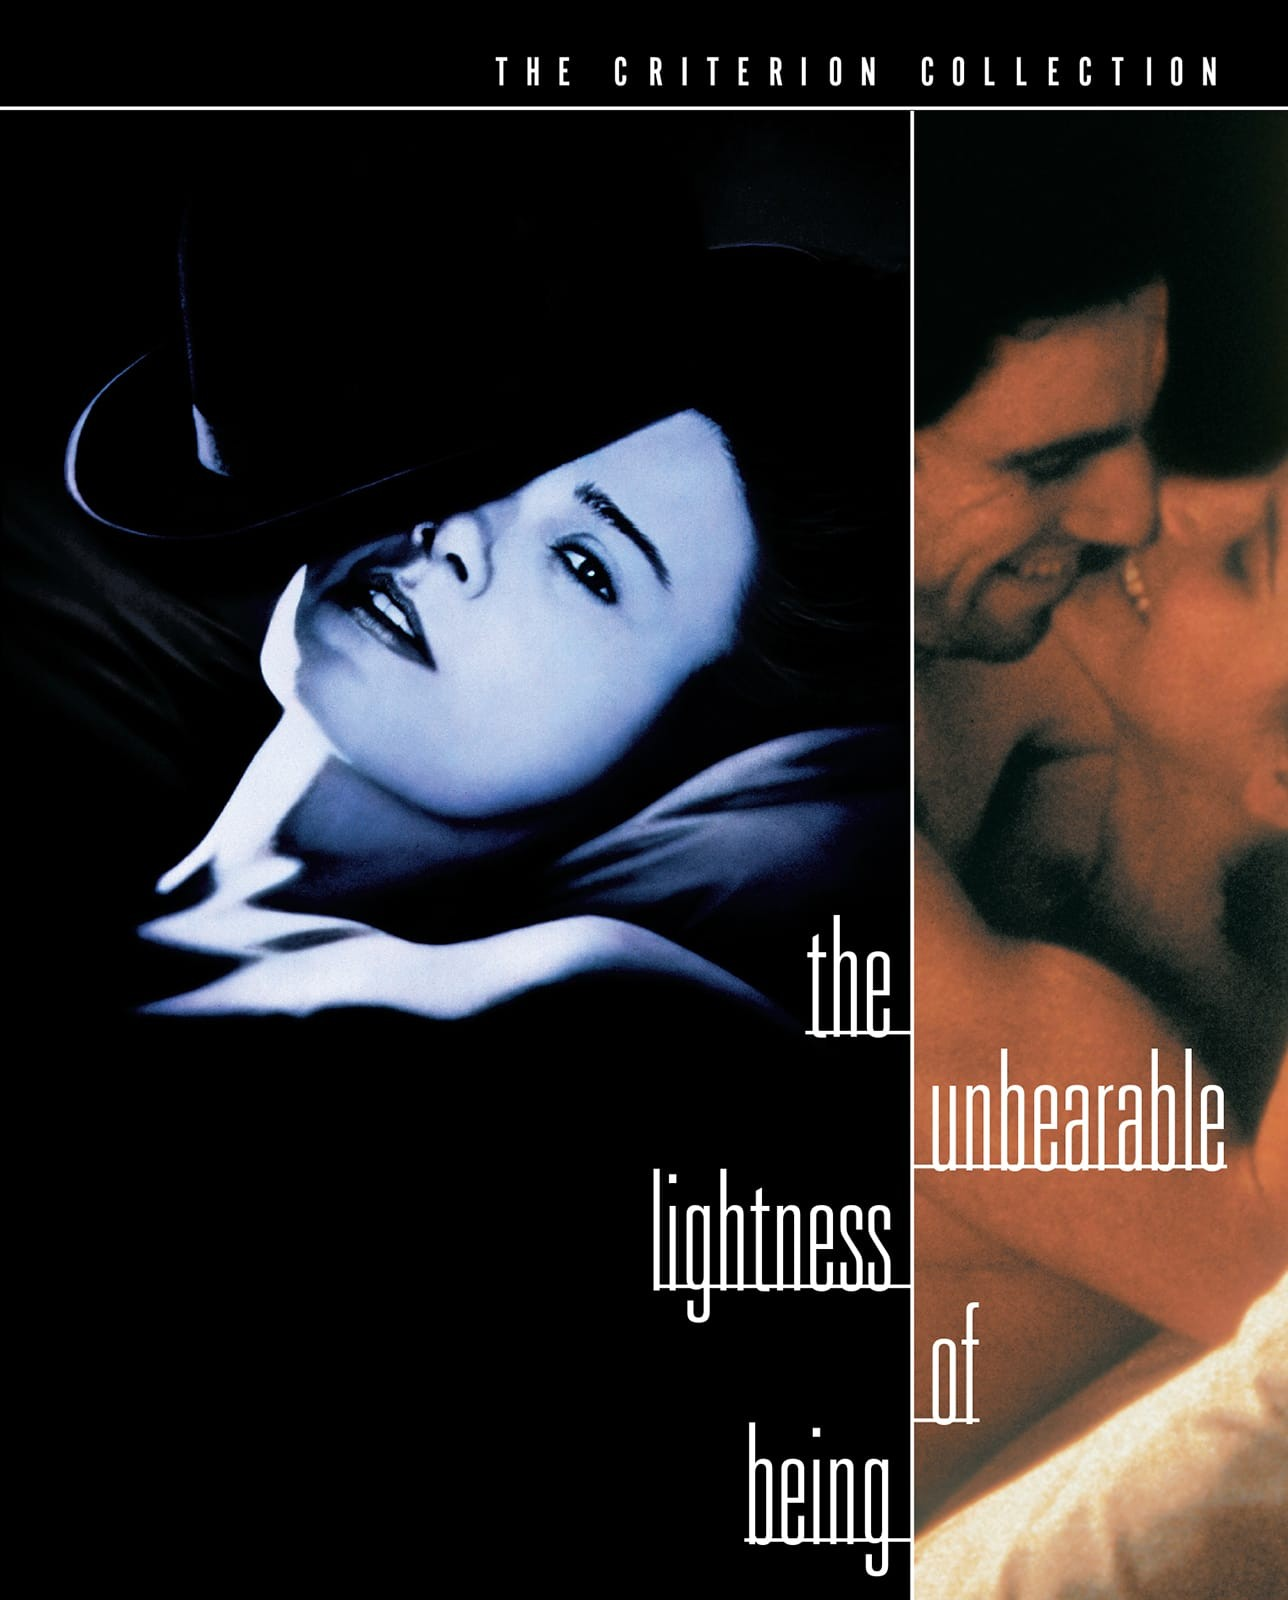 milan kundera s the unbearable lightness of Kundera's themes of lightness, heaviness, and repetition are very deep i don't pretend to understand them completely for me, it's enough that they intrigue, and the movie does them justice the acting of all the principals is astounding.